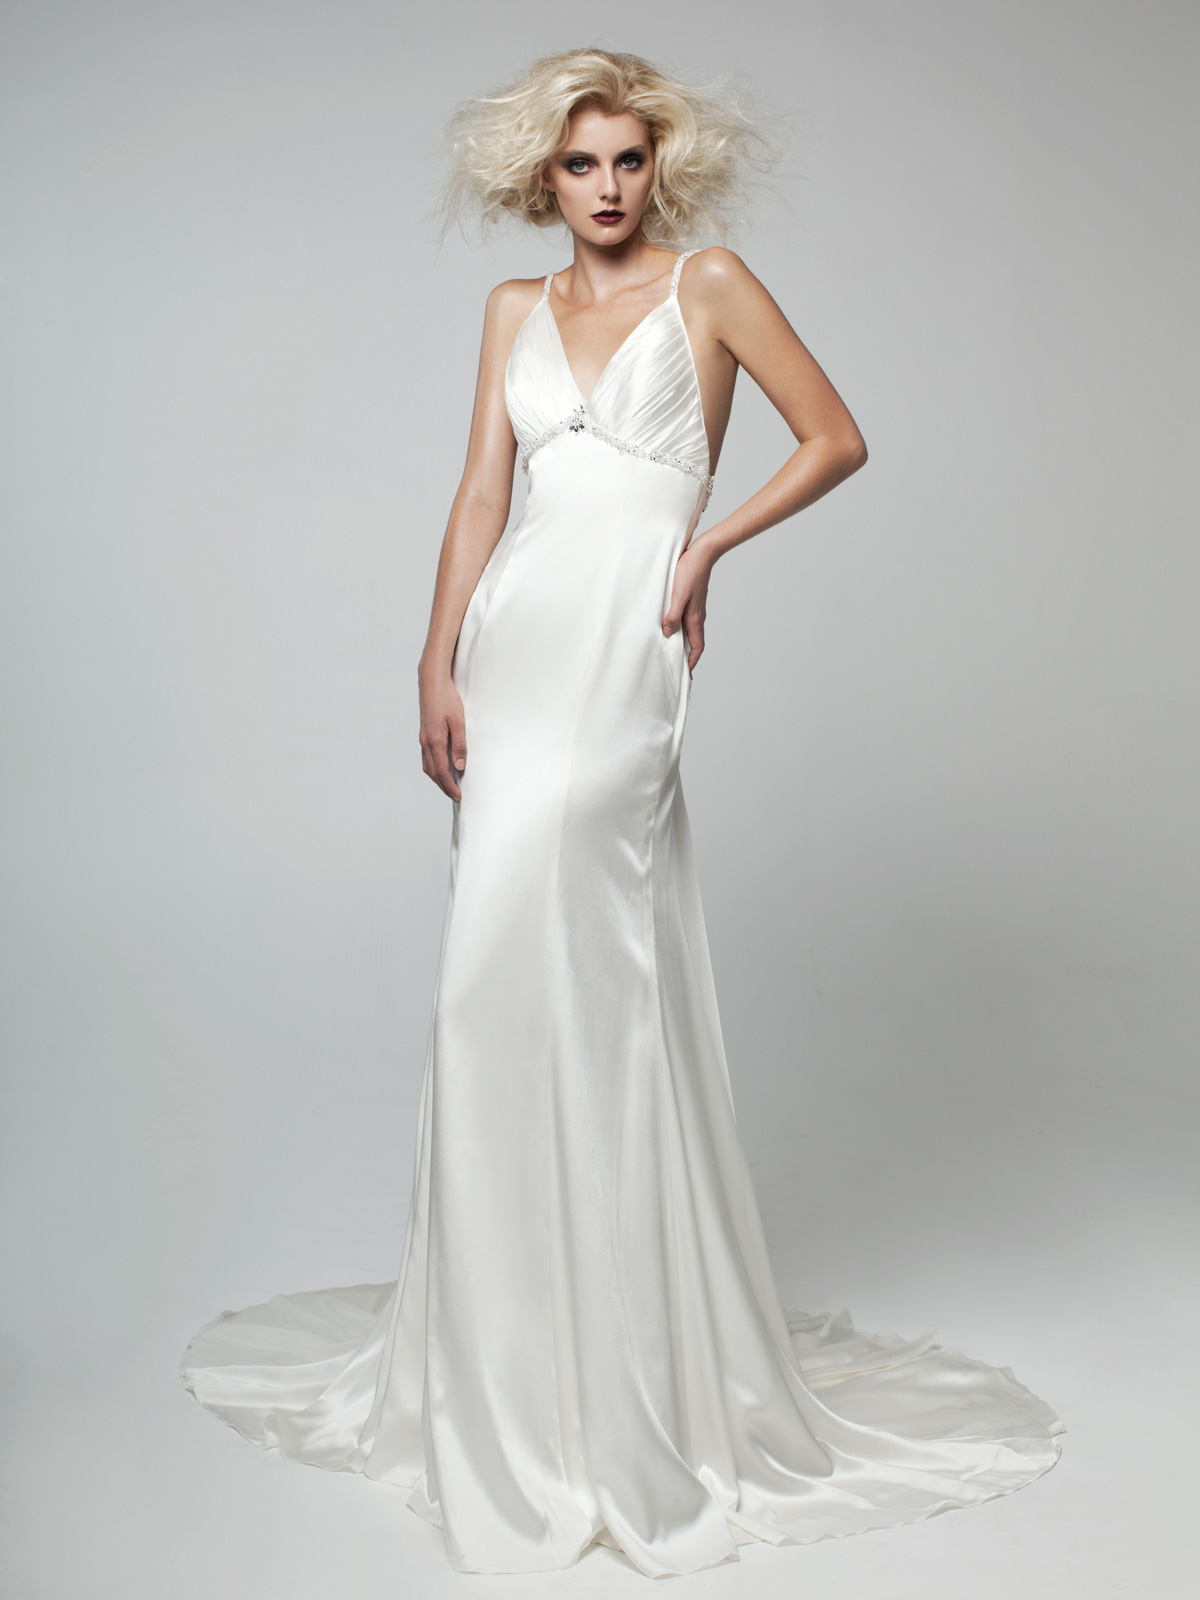 Casual + Beach Wedding Dresses Gowns